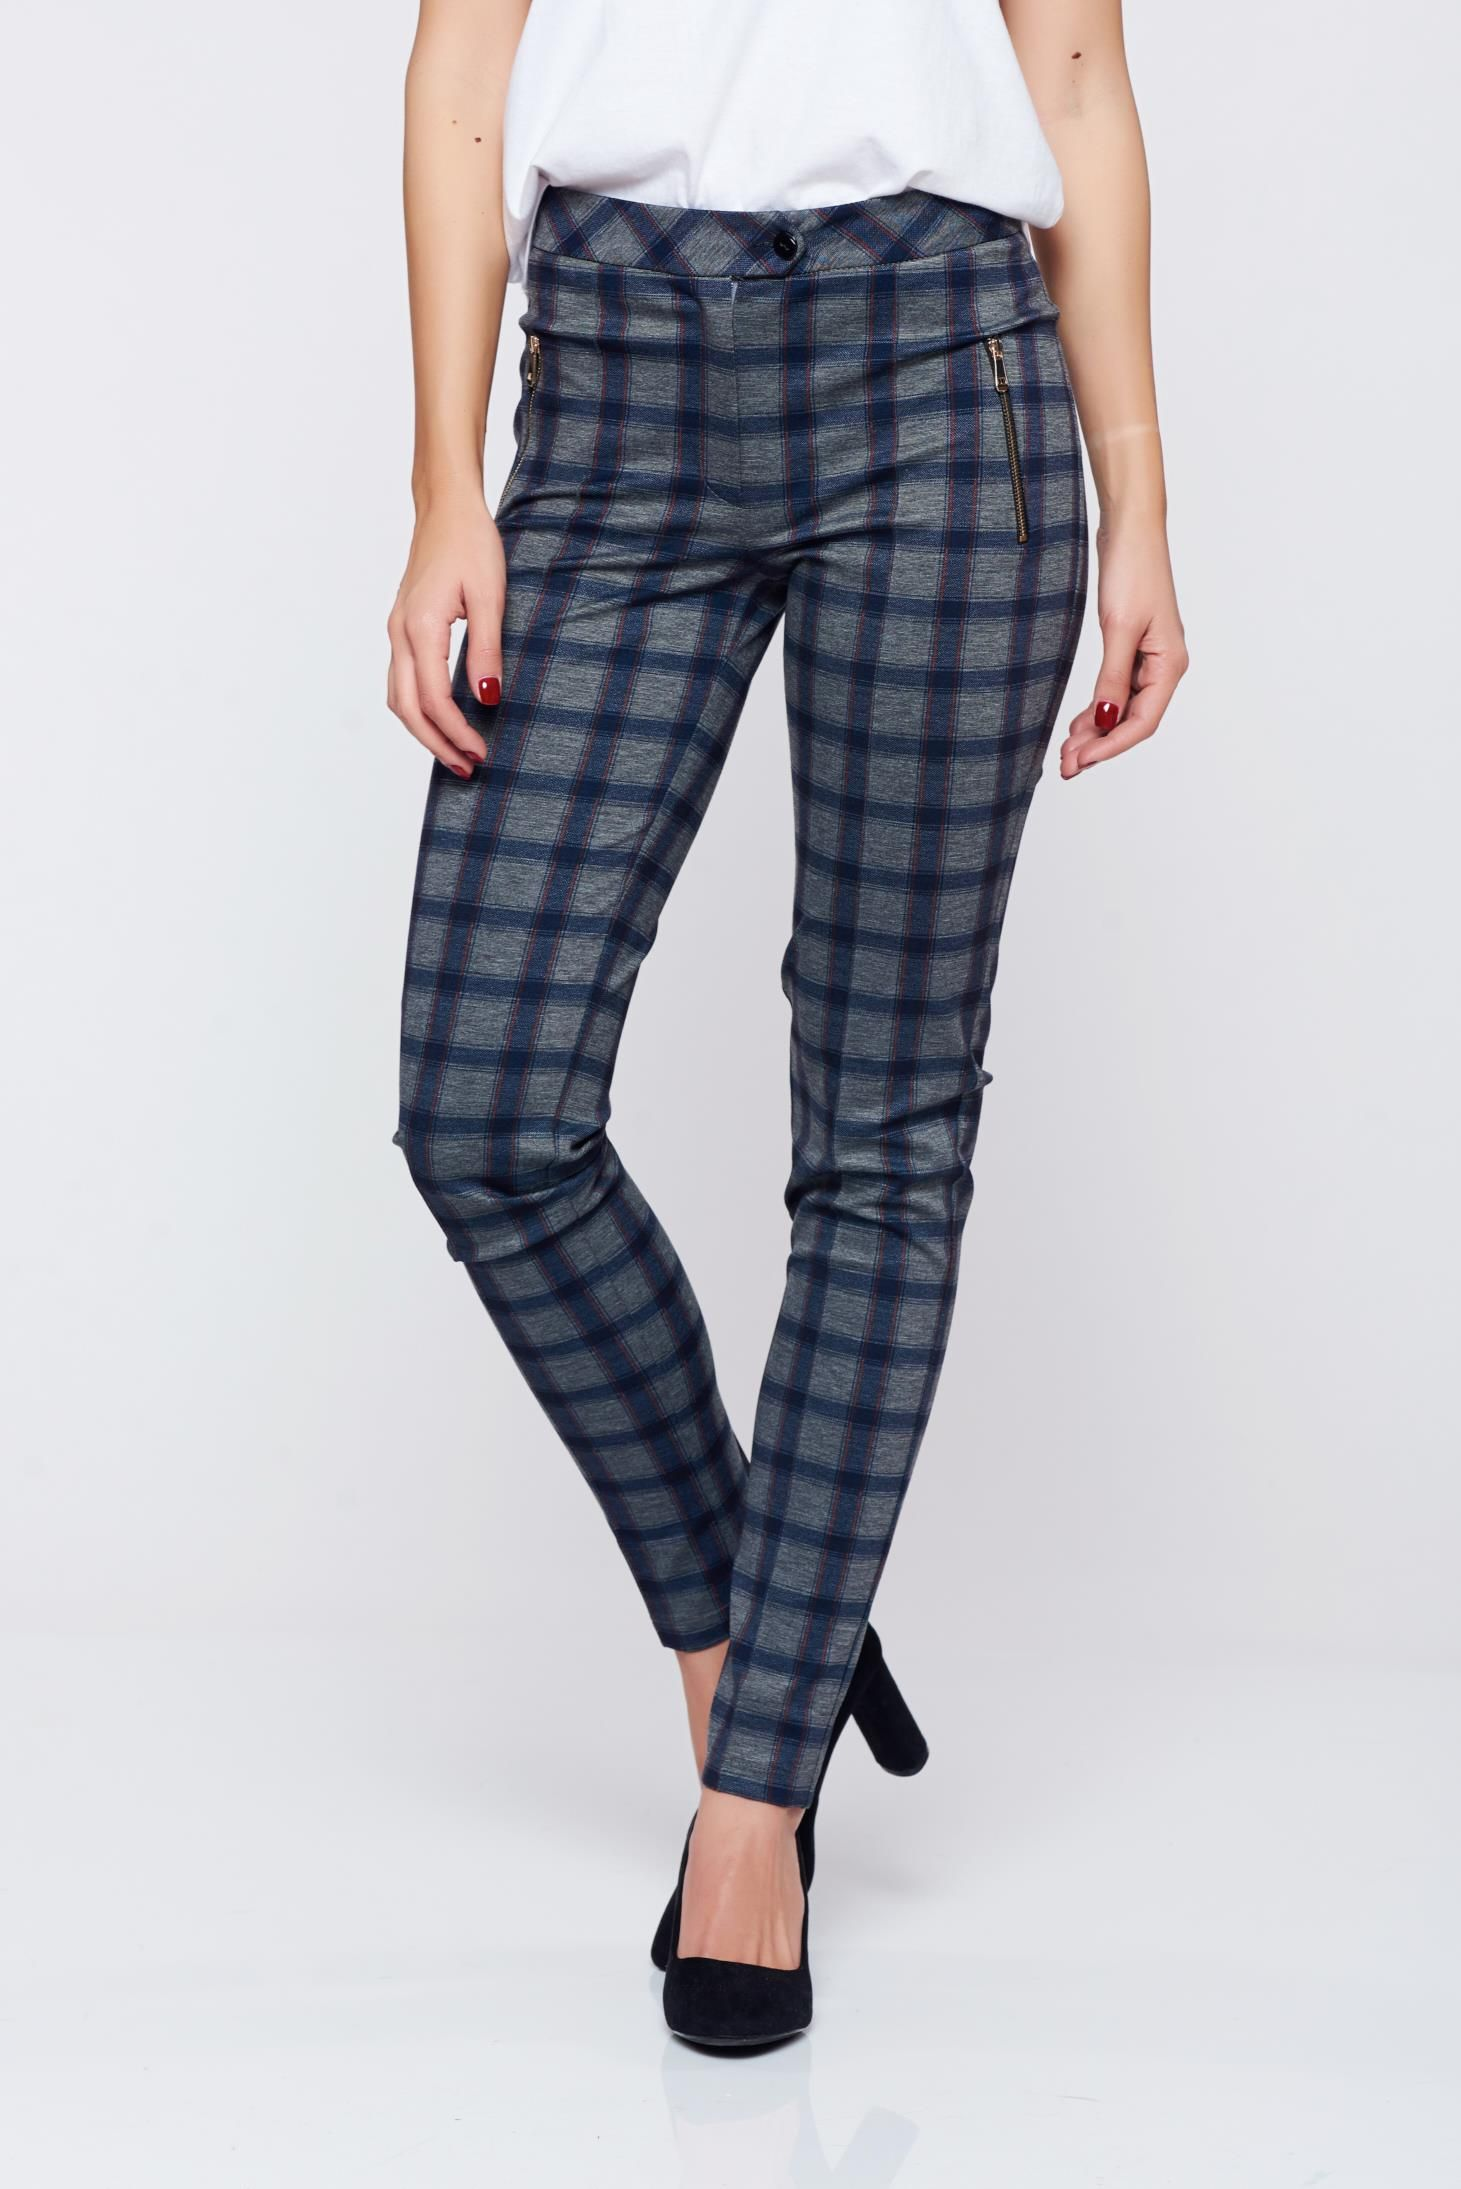 LaDonna conical darkblue office chequers trousers with medium waist women`s trousers tented & LaDonna conical darkblue office chequers trousers with medium ...